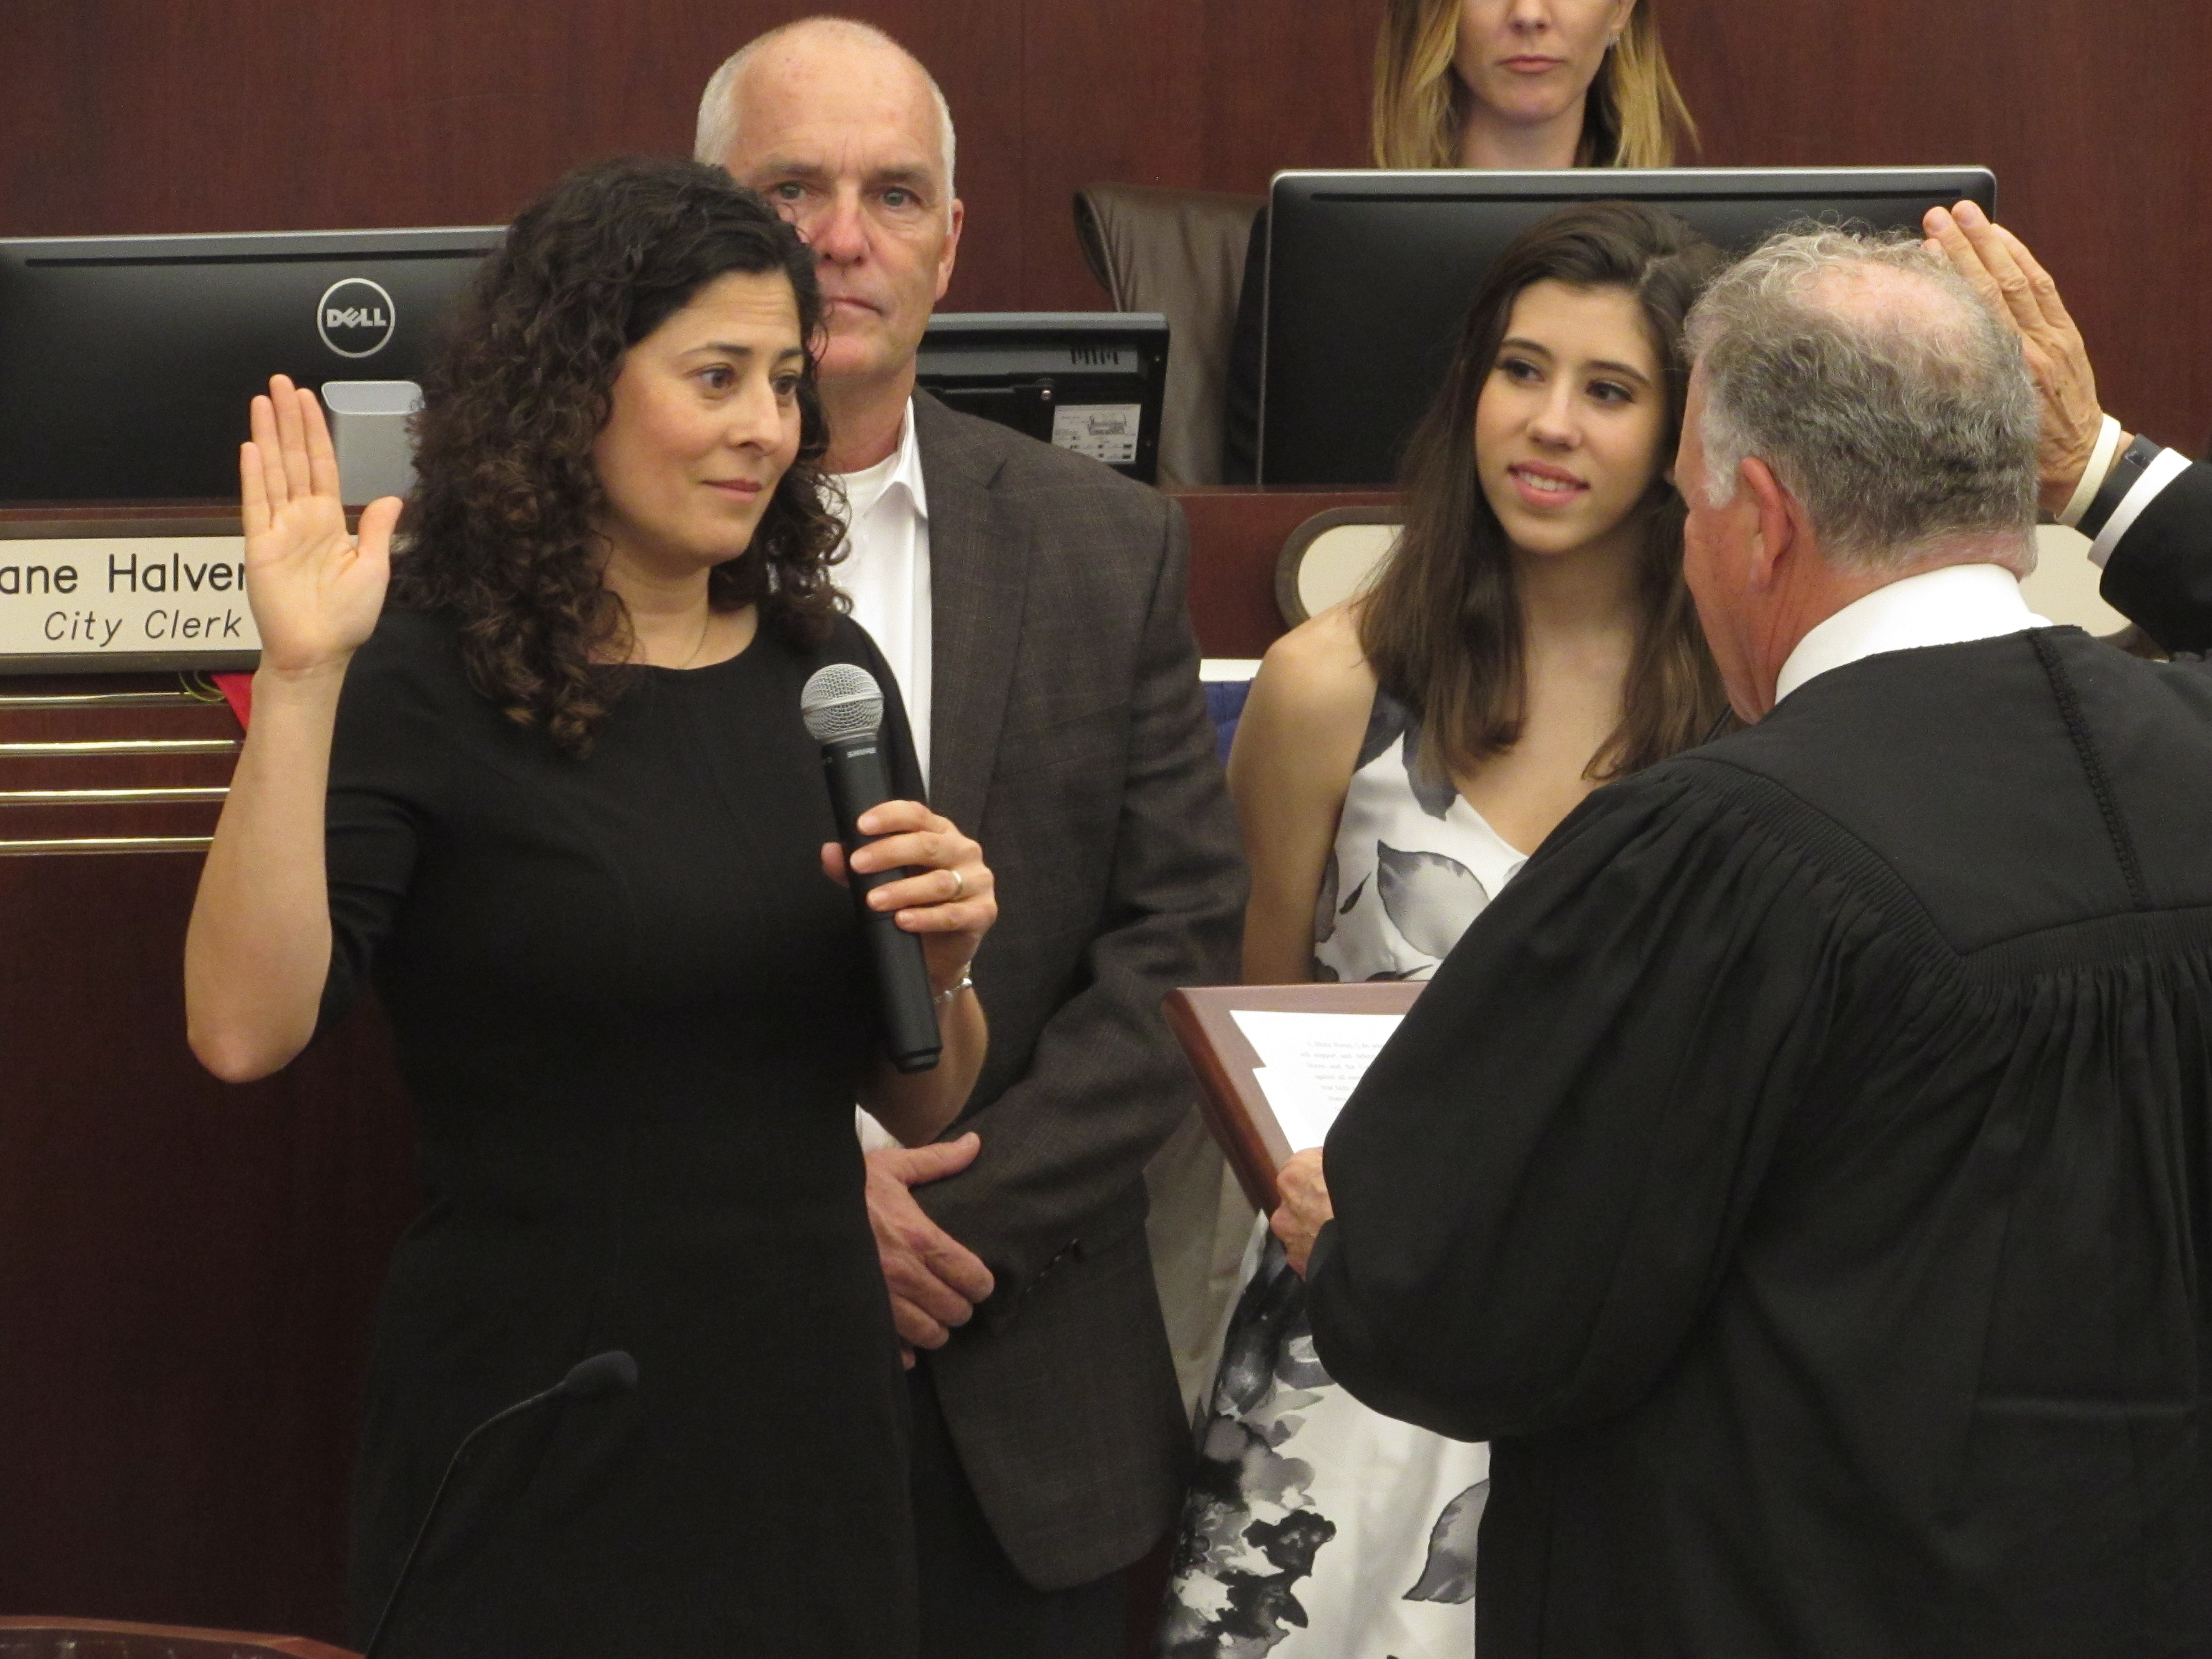 Diaz, Morasco, Shultz take seats as elected officials